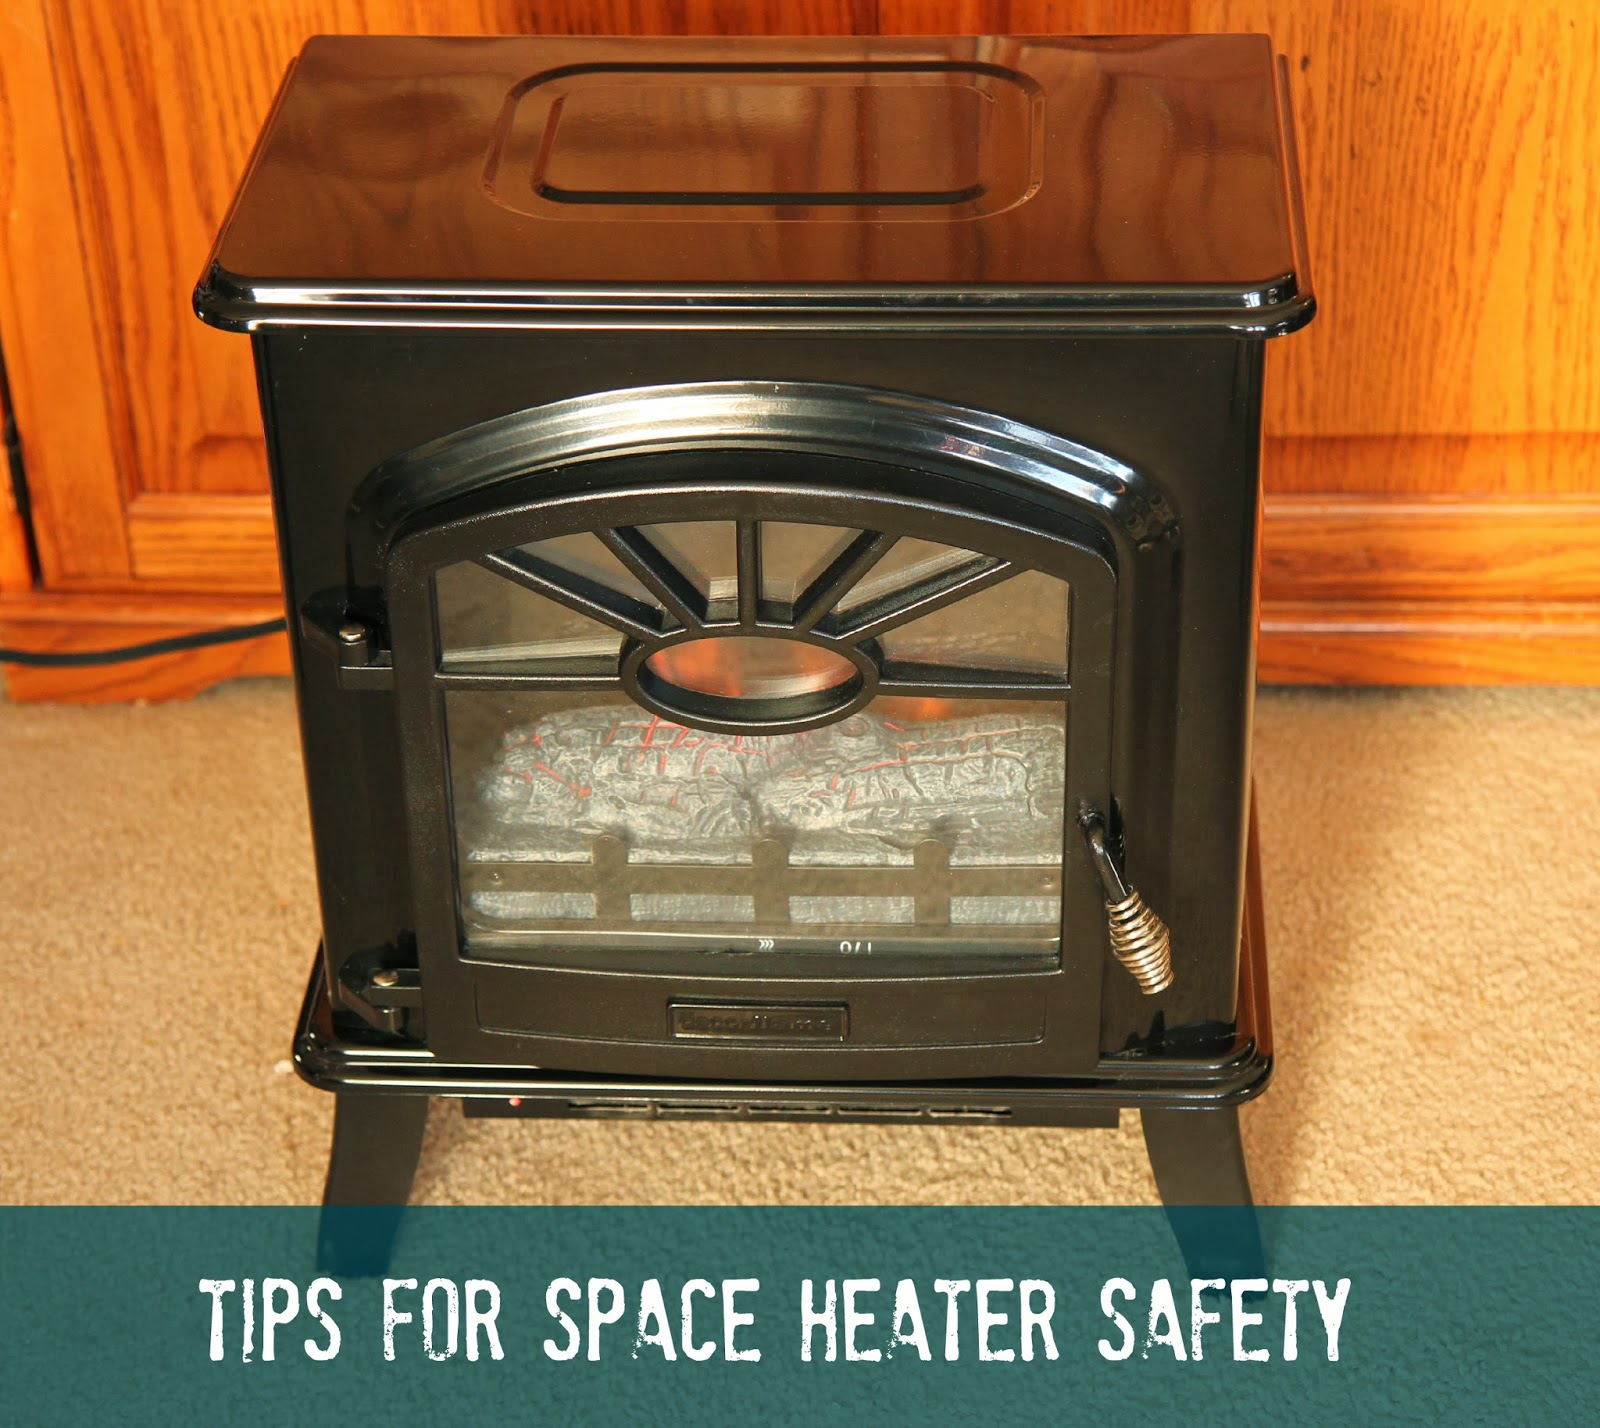 Your Home Heating Safety Tips: 7 Tips For Safer Space Heater Use In Your Home